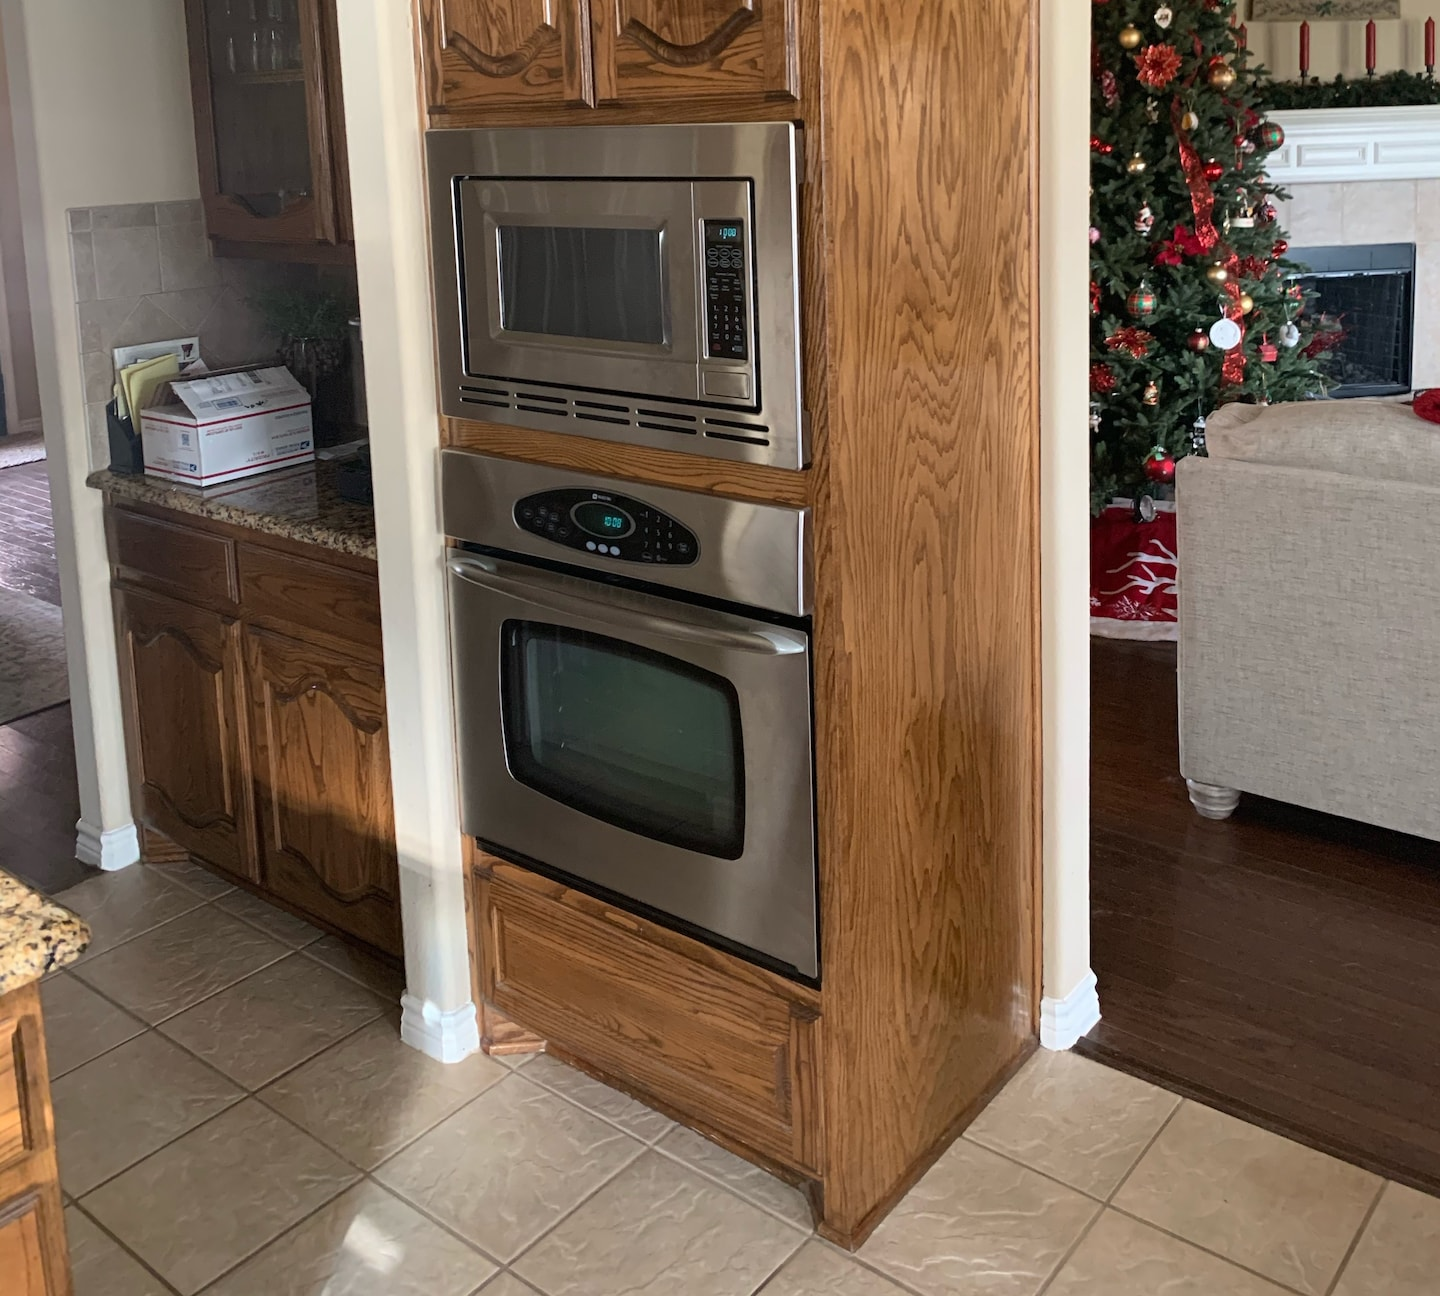 Double oven replacement